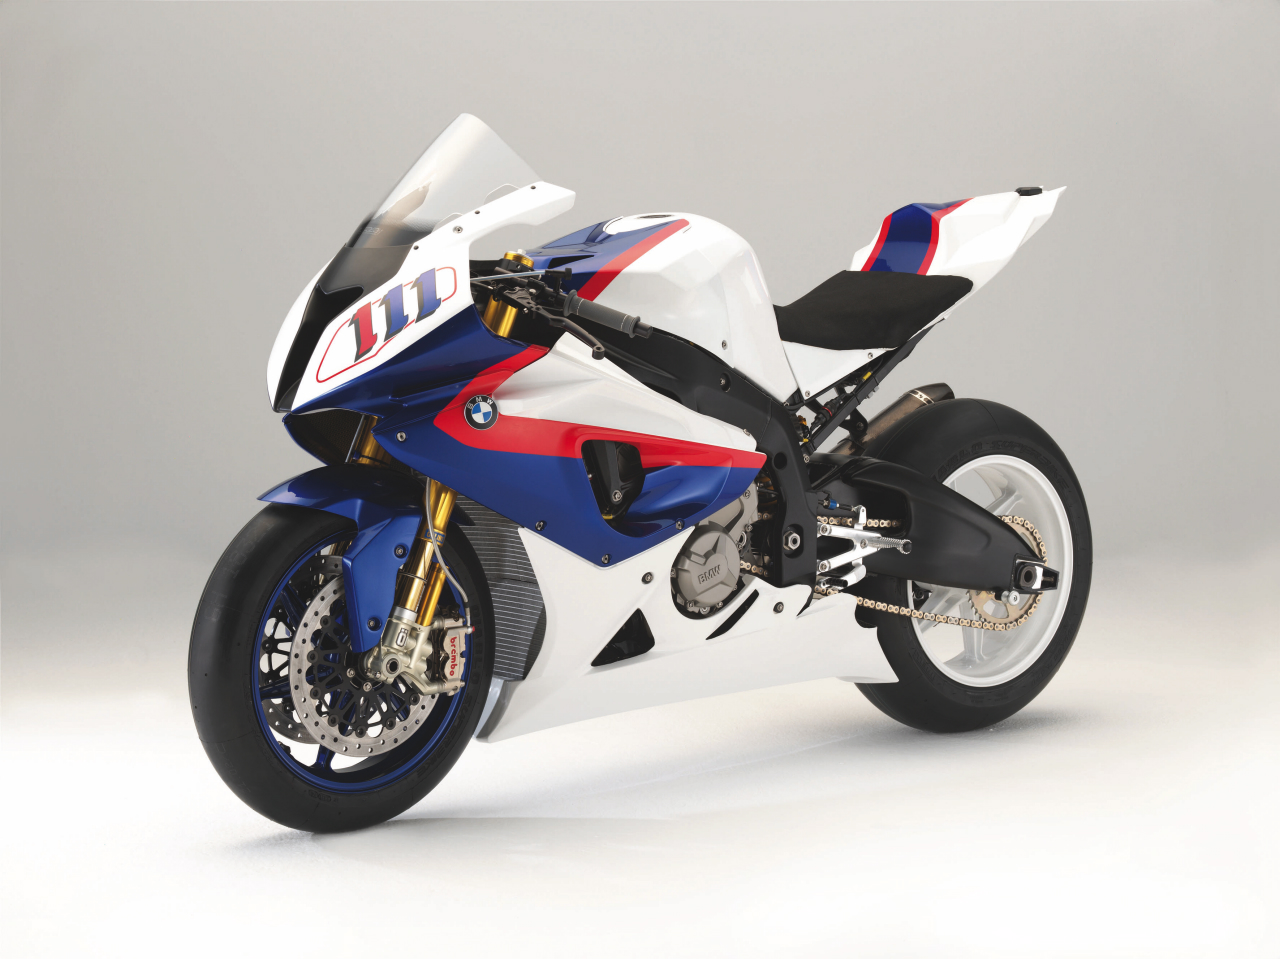 BMW S1000RR prices